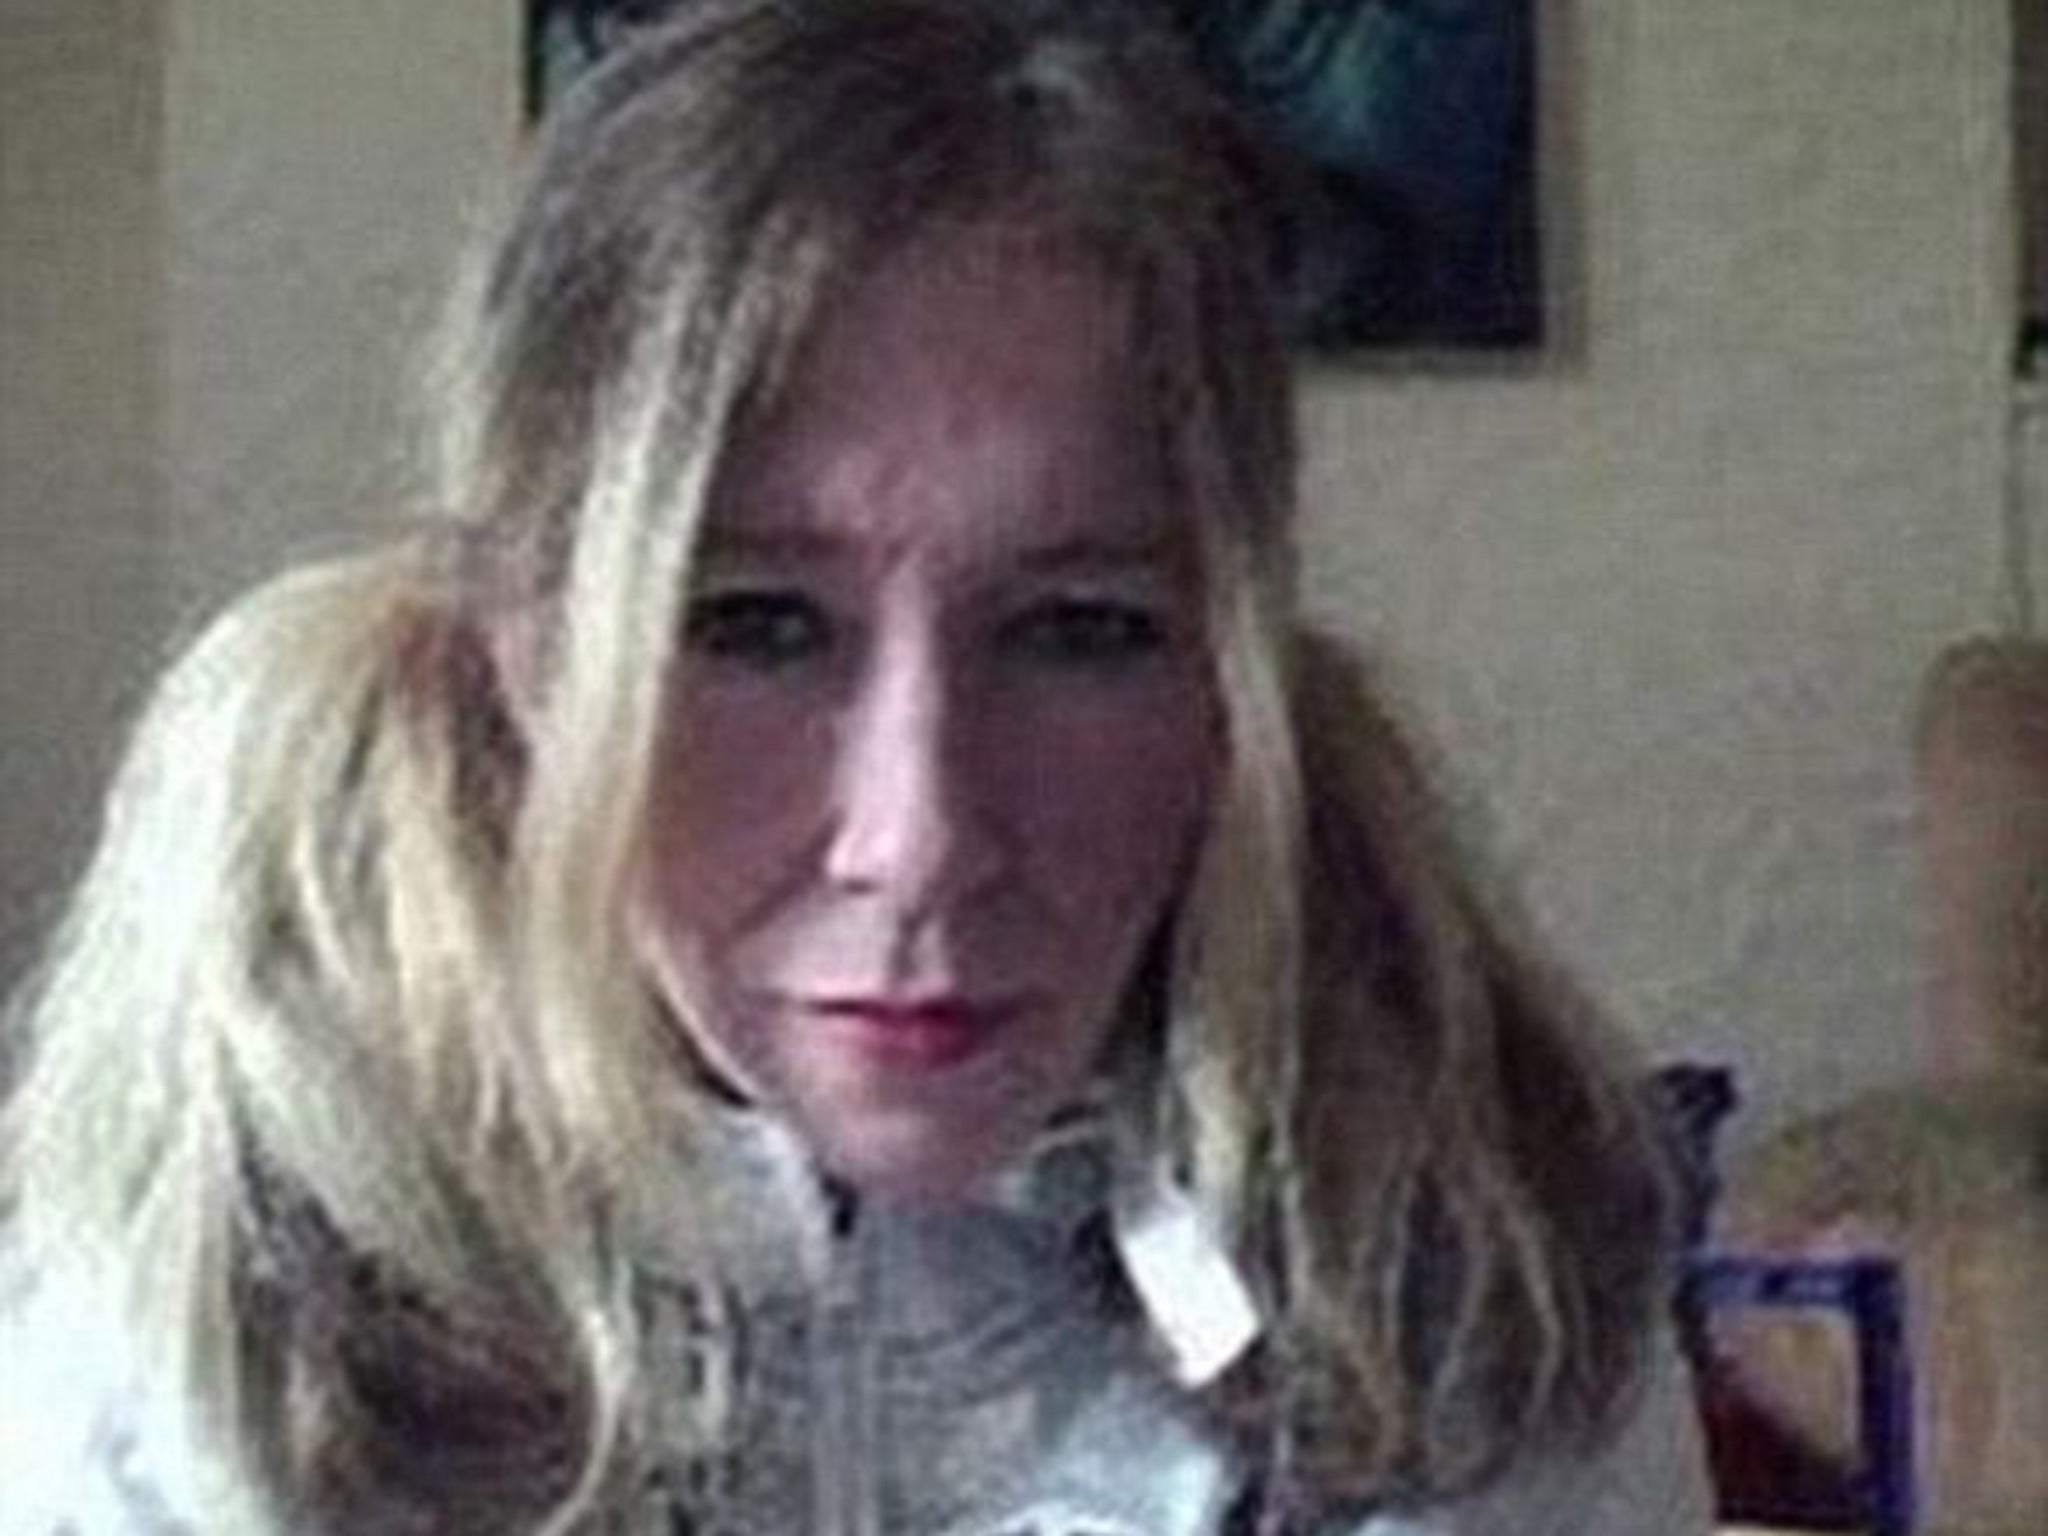 The reported death of the 'White Widow' and her 12-year-old son should make us face some hard facts